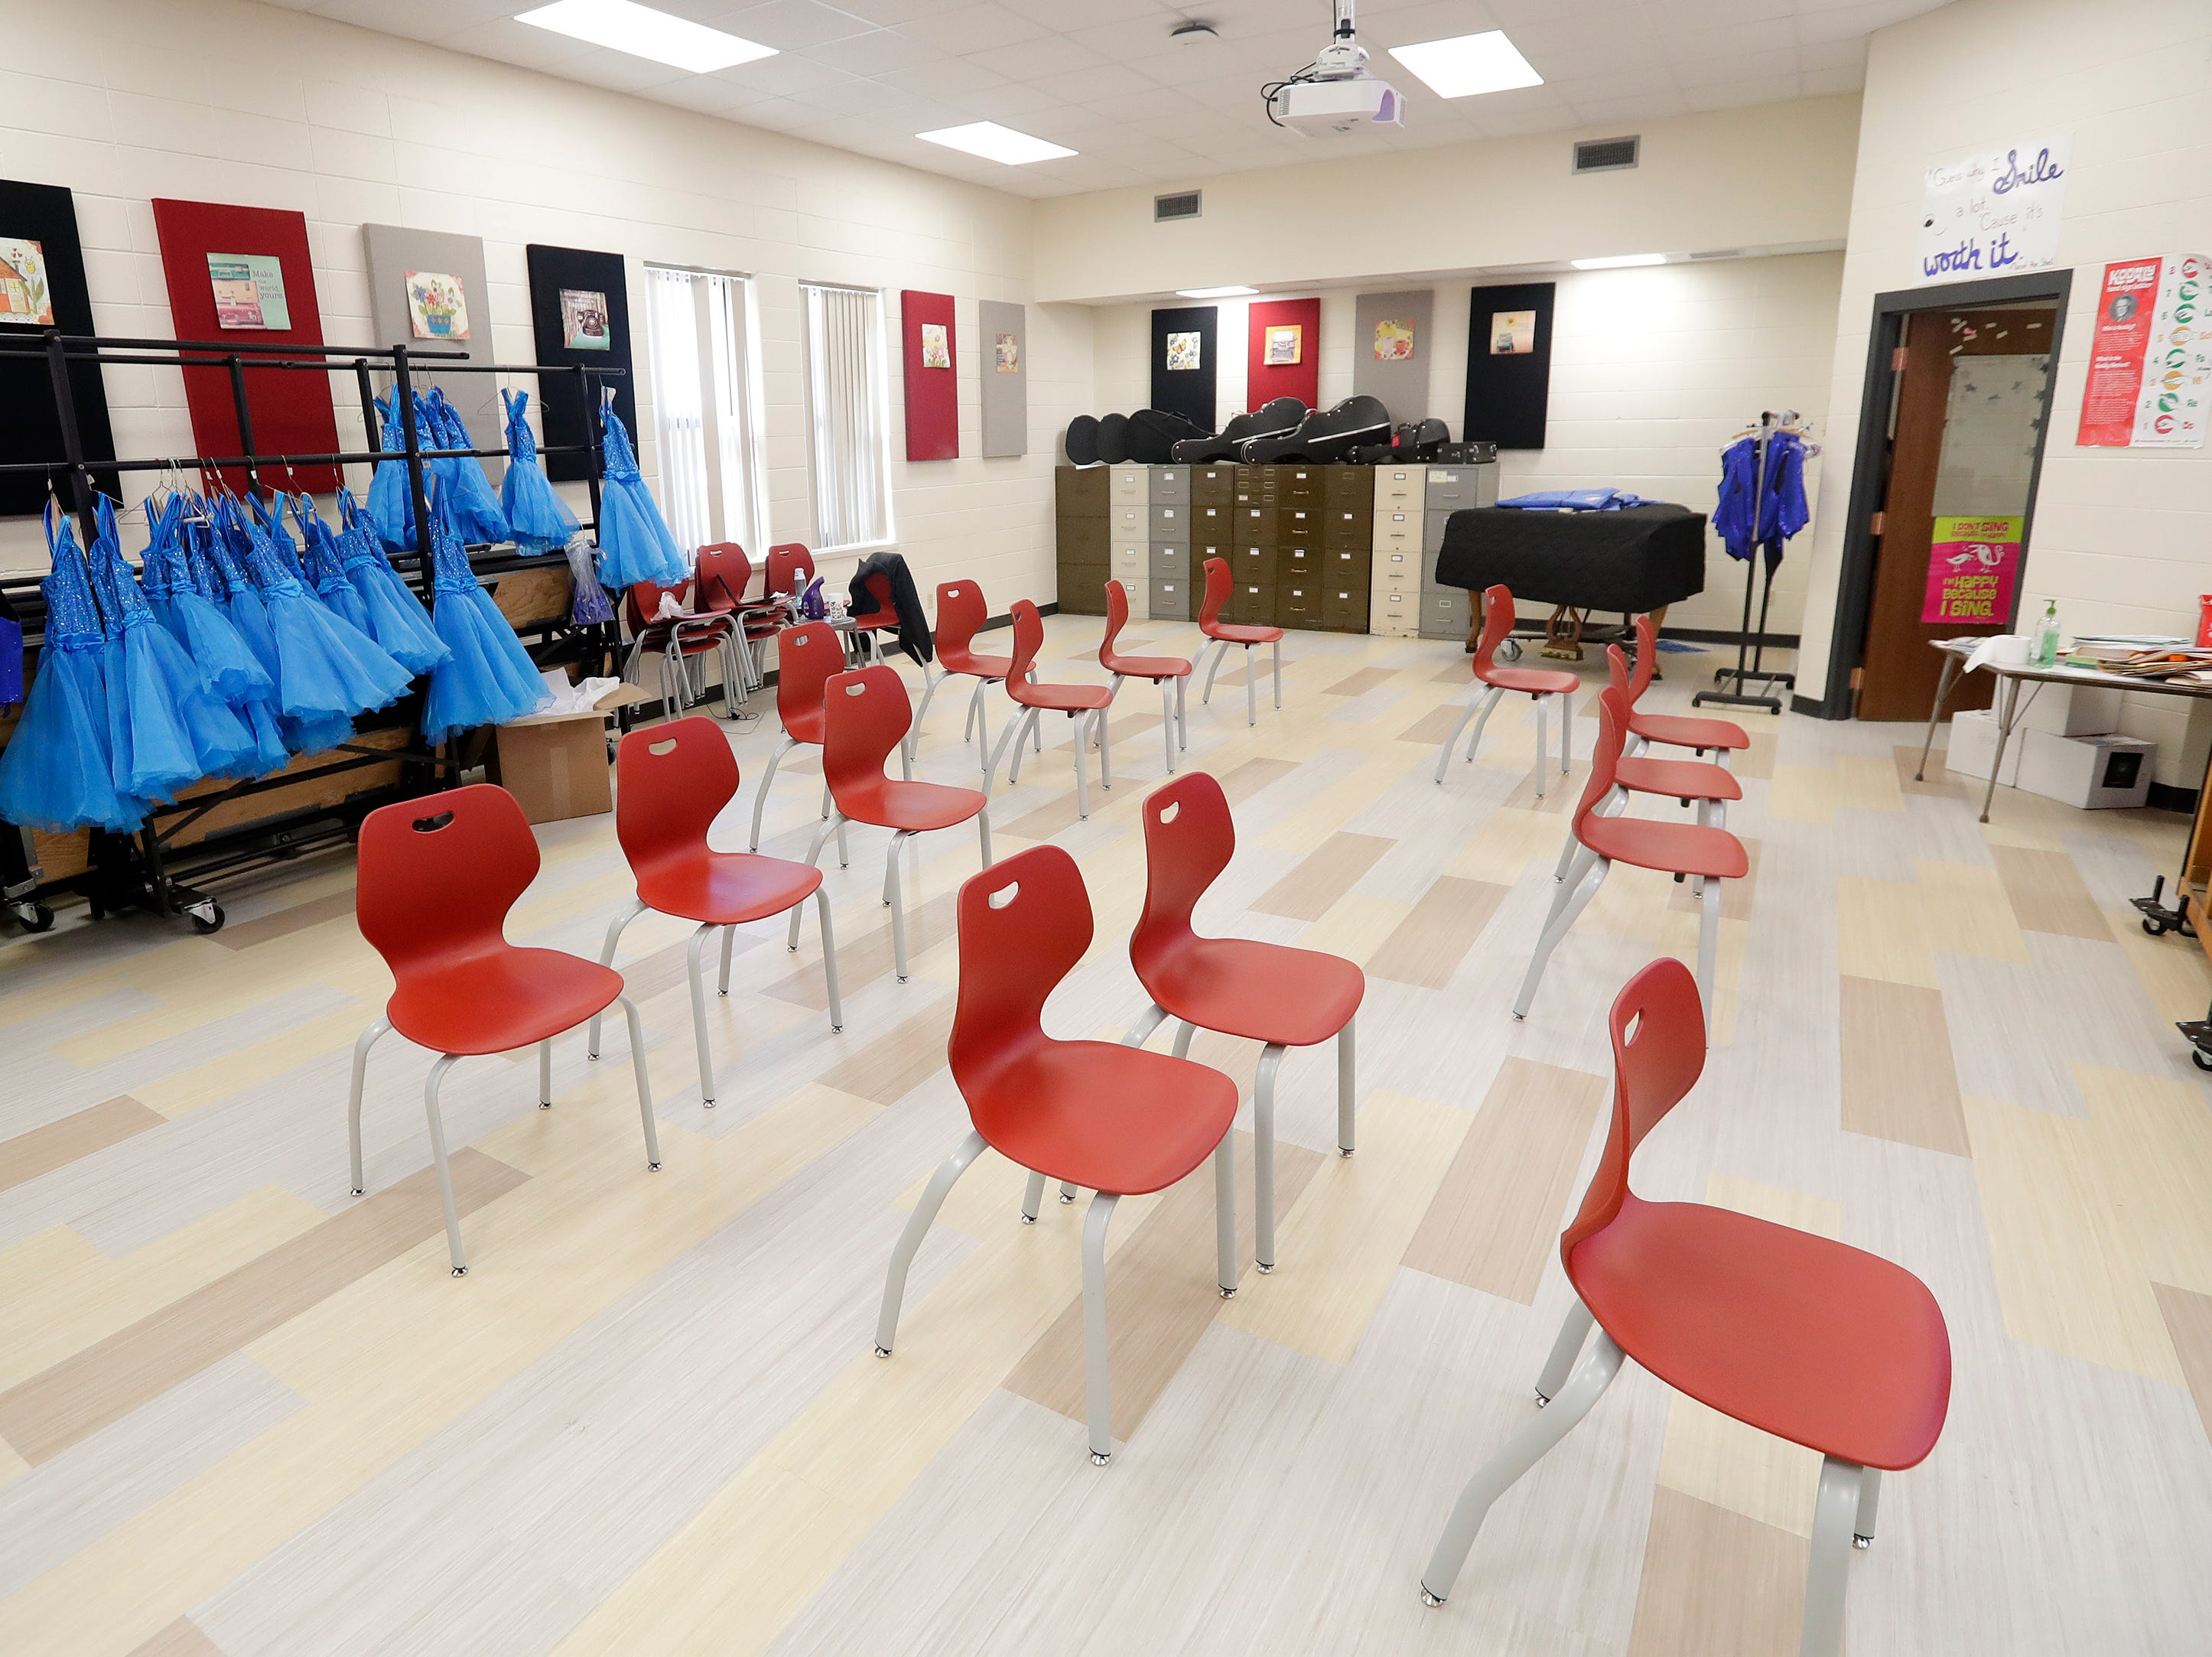 A new choir classroom at Washington Middle School is shown on Wednesday, February 13, 2019 in Green Bay, Wis.